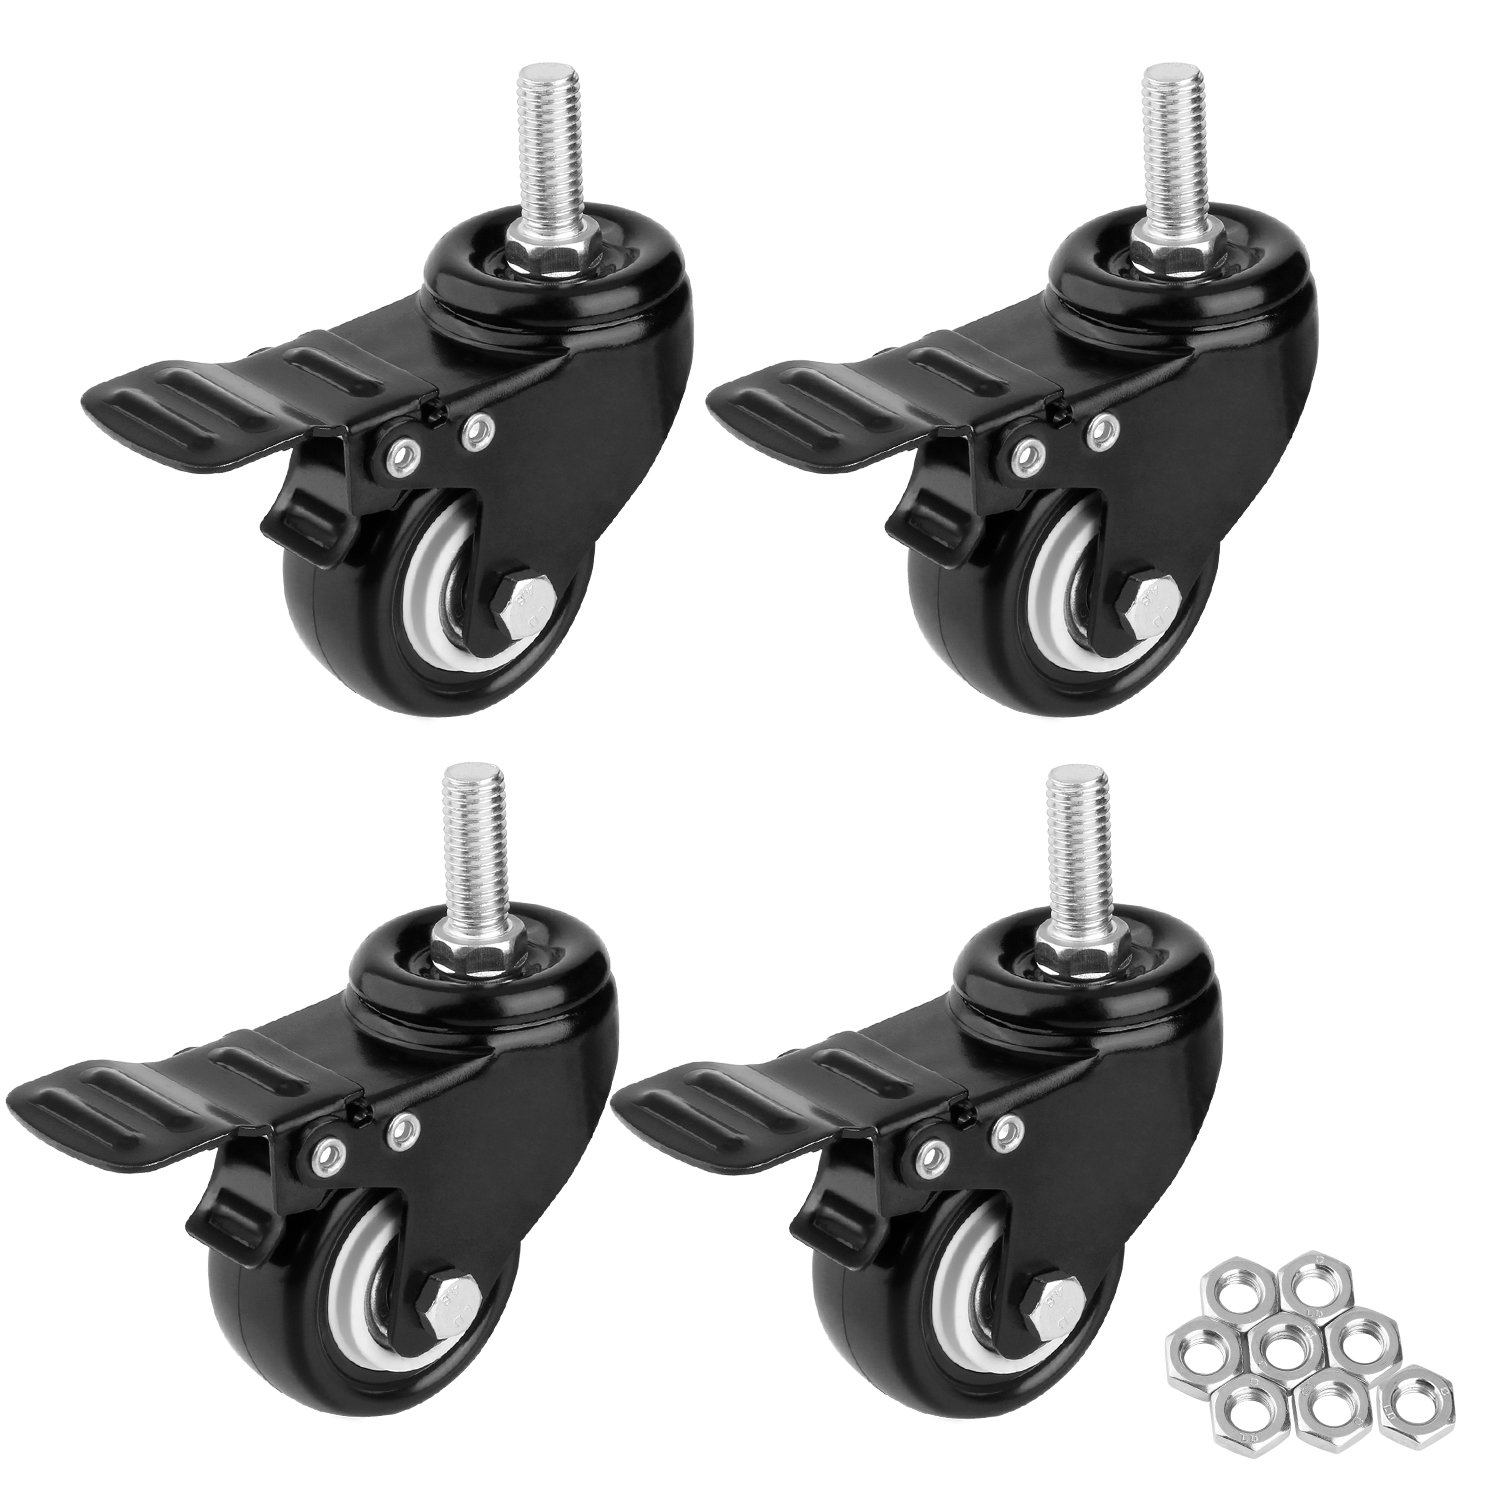 "1.5"" Threaded Stem Casters with Brake, Heavy Duty Swivel Caster Wheels with M8x25 Threaded Stem and Nuts for Shopping Carts, Trolley, Workbench, Furniture (Pack of 4) (M8x25)"